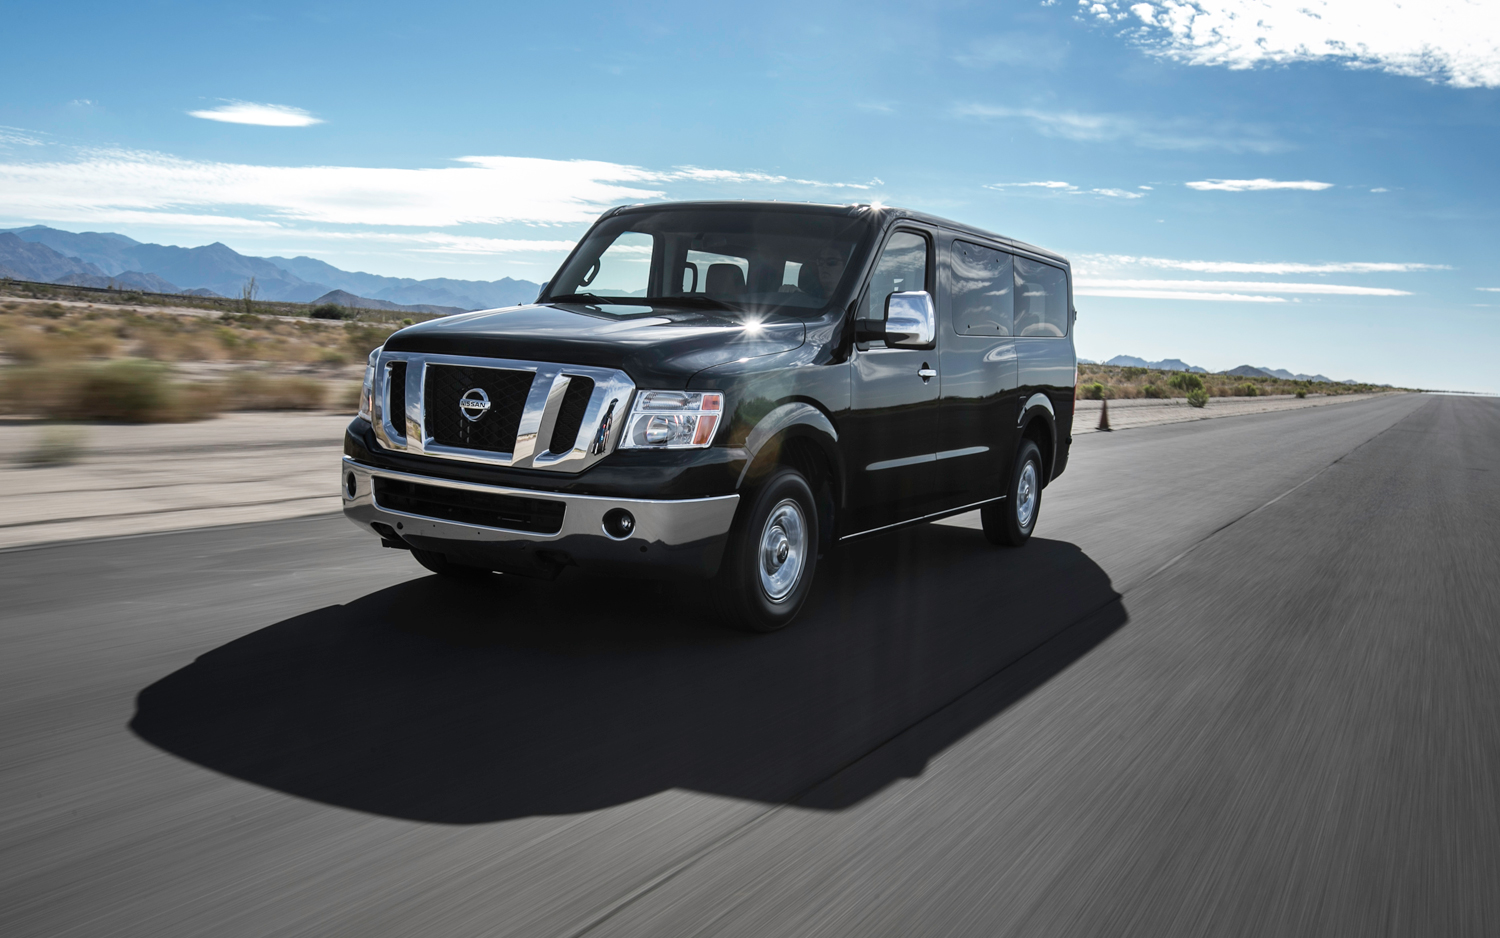 2013 Nissan Nv Information And Photos Zombiedrive